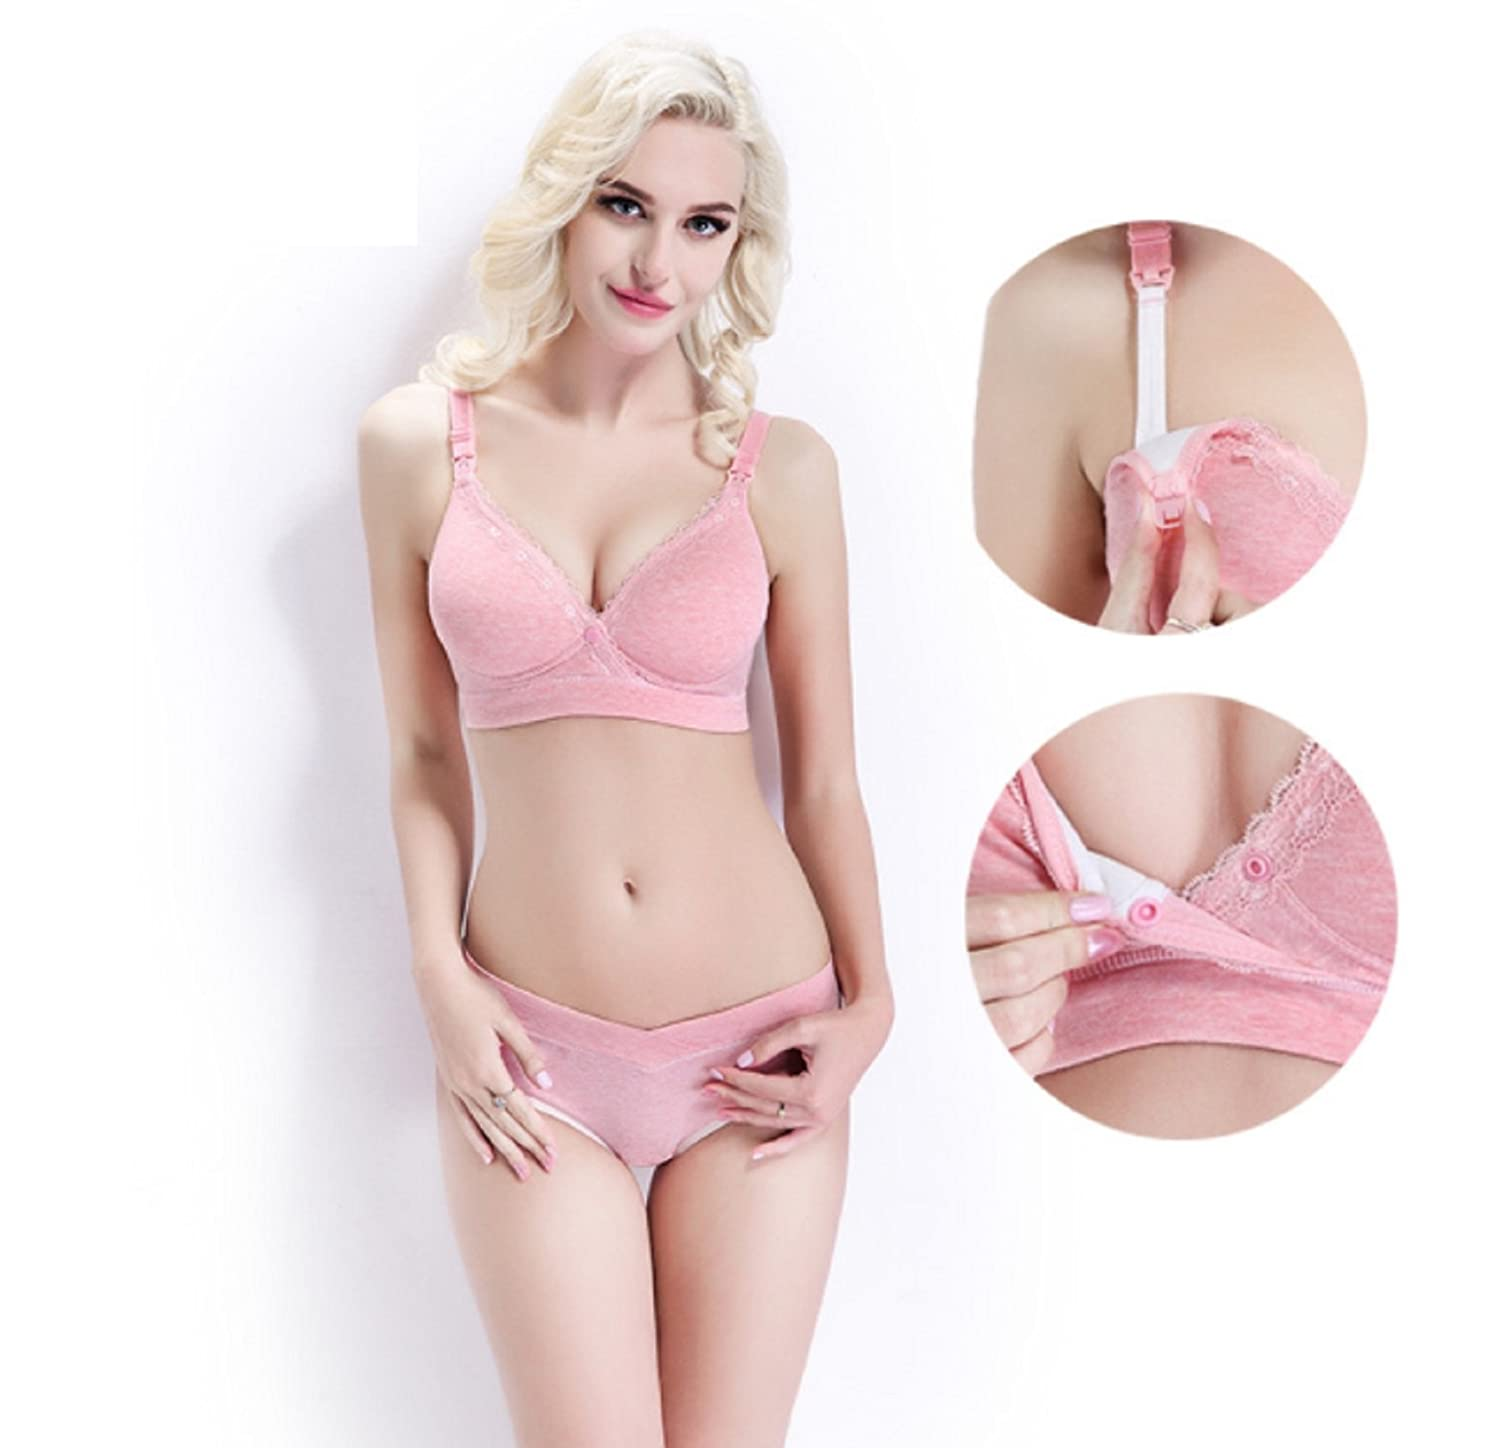 bc1b7afe6fb17 Amazon.com : Maternity Nursing Bra+Underwear Lace Breastfeeding Bra for Pregnant  Women Pregnancy Underwear Clothes Panties Bra Sets (B40, Pink) : Baby